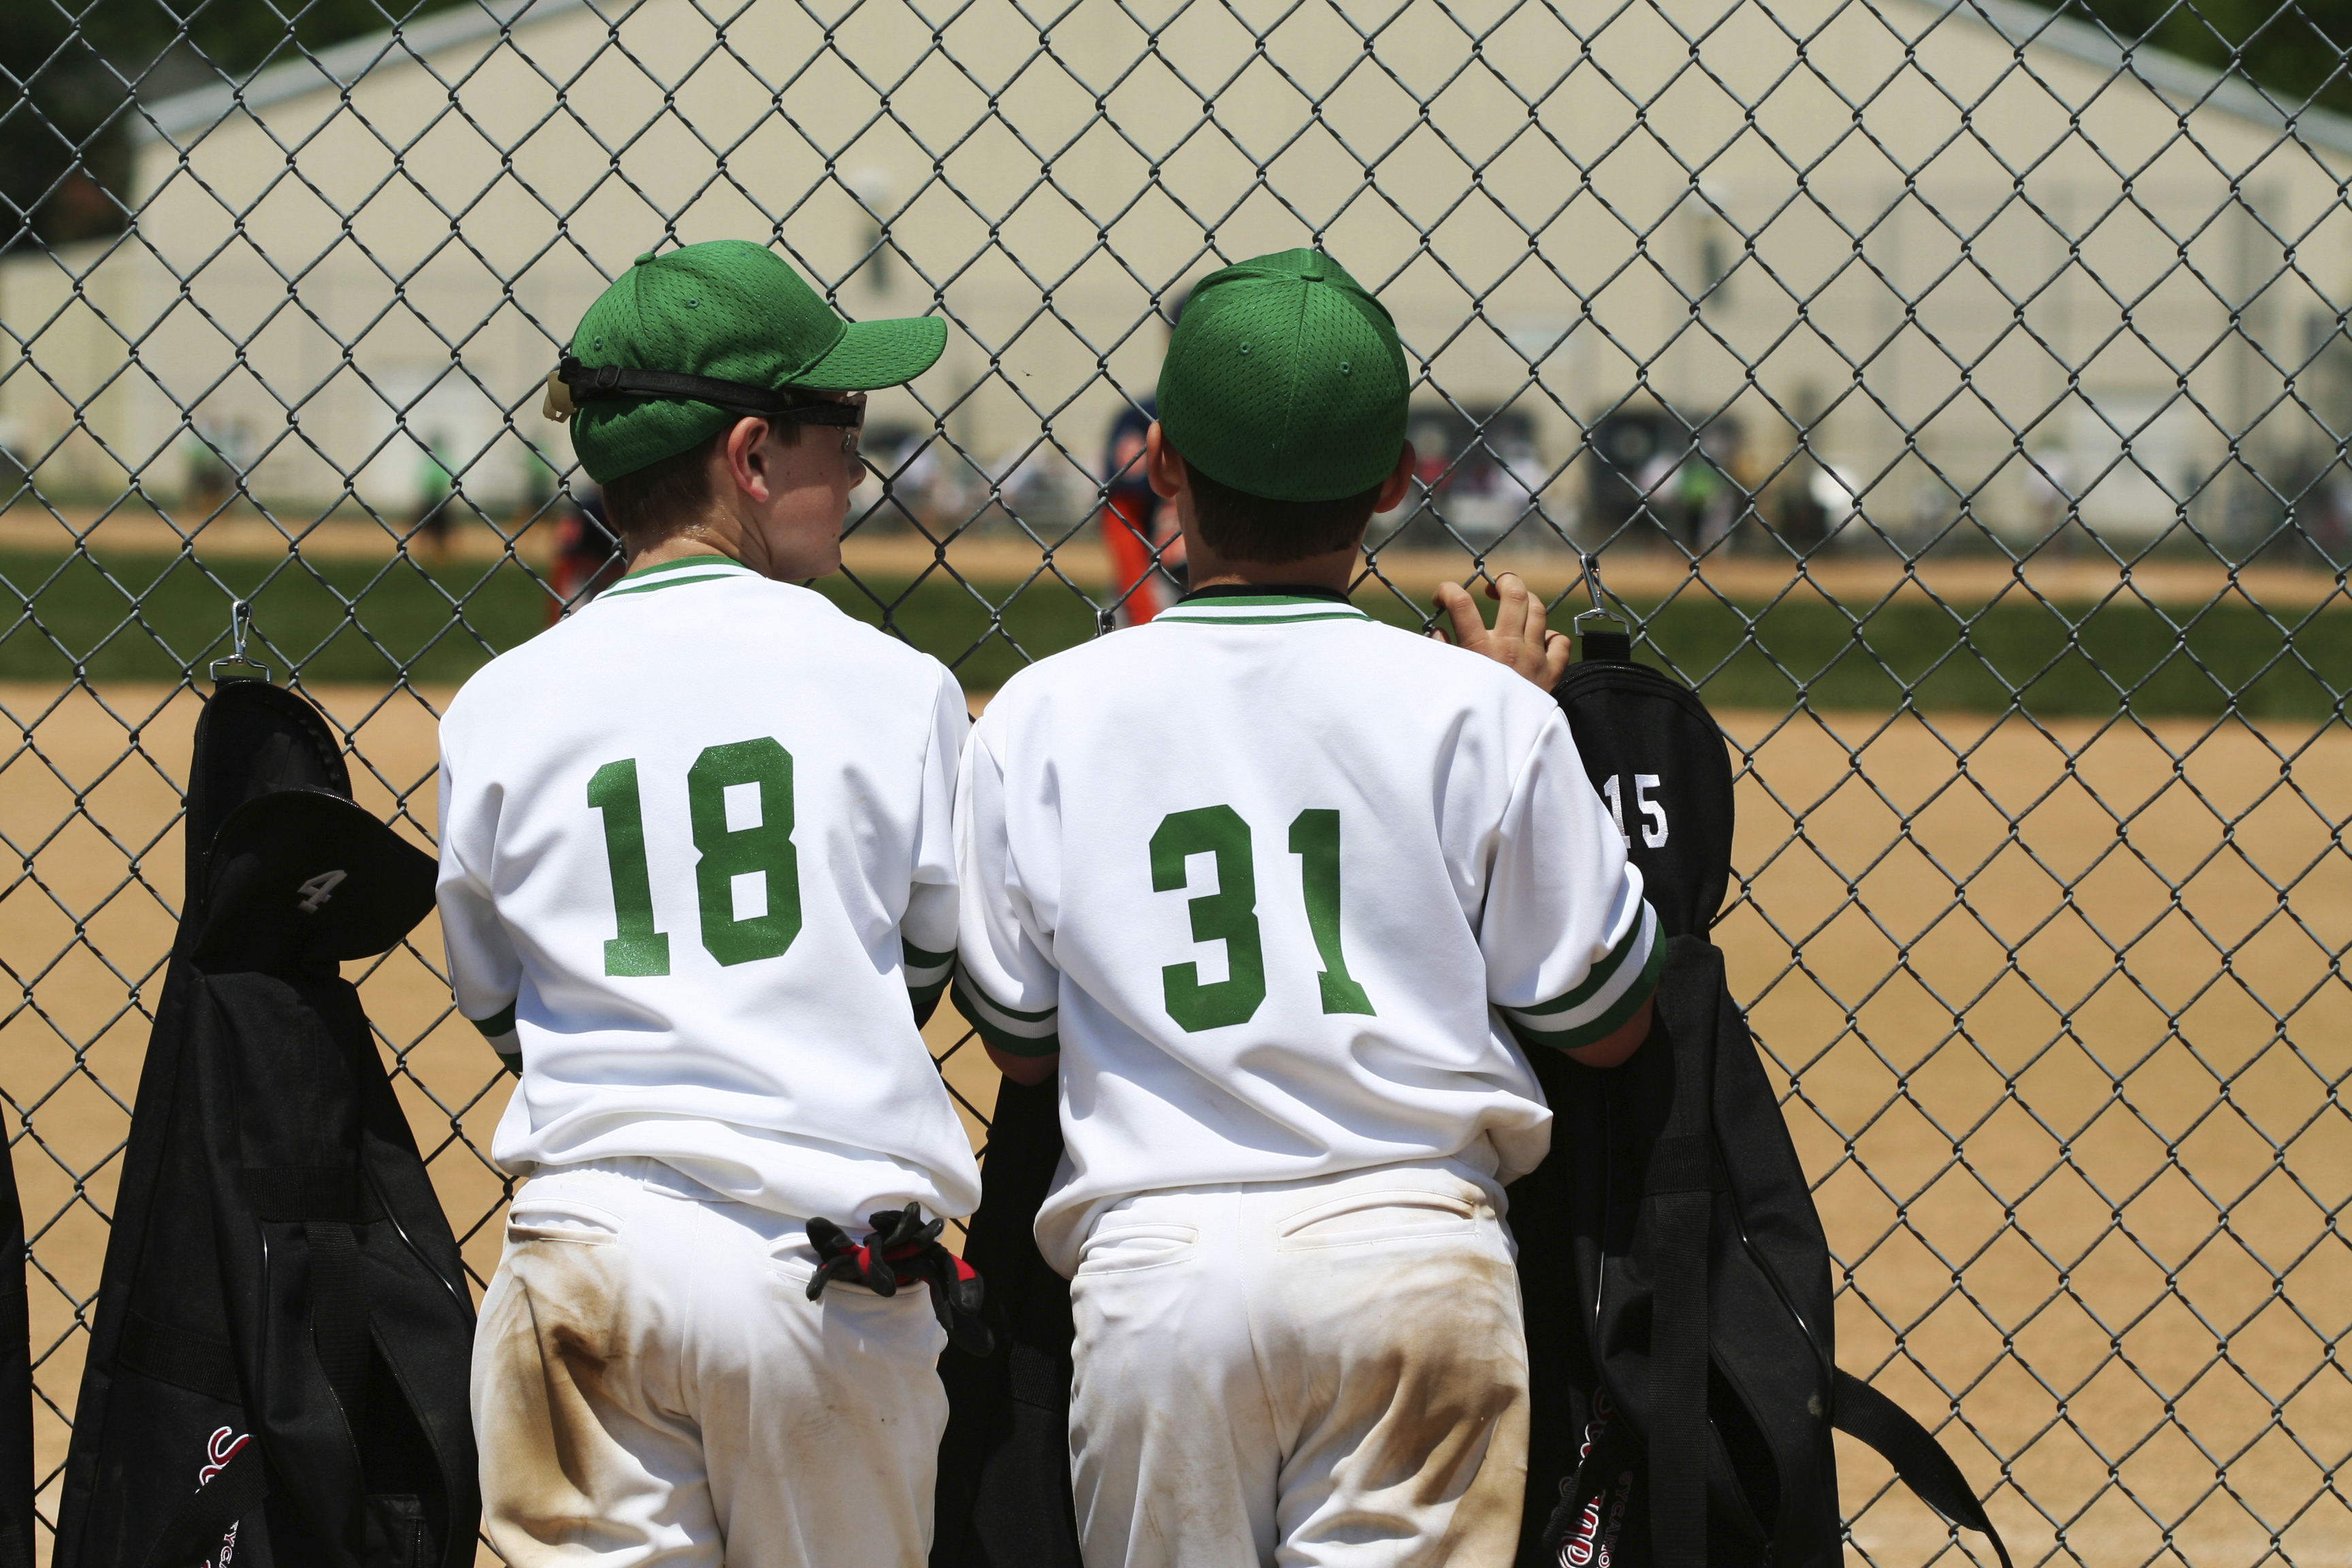 two boys in white and green baseball uniforms